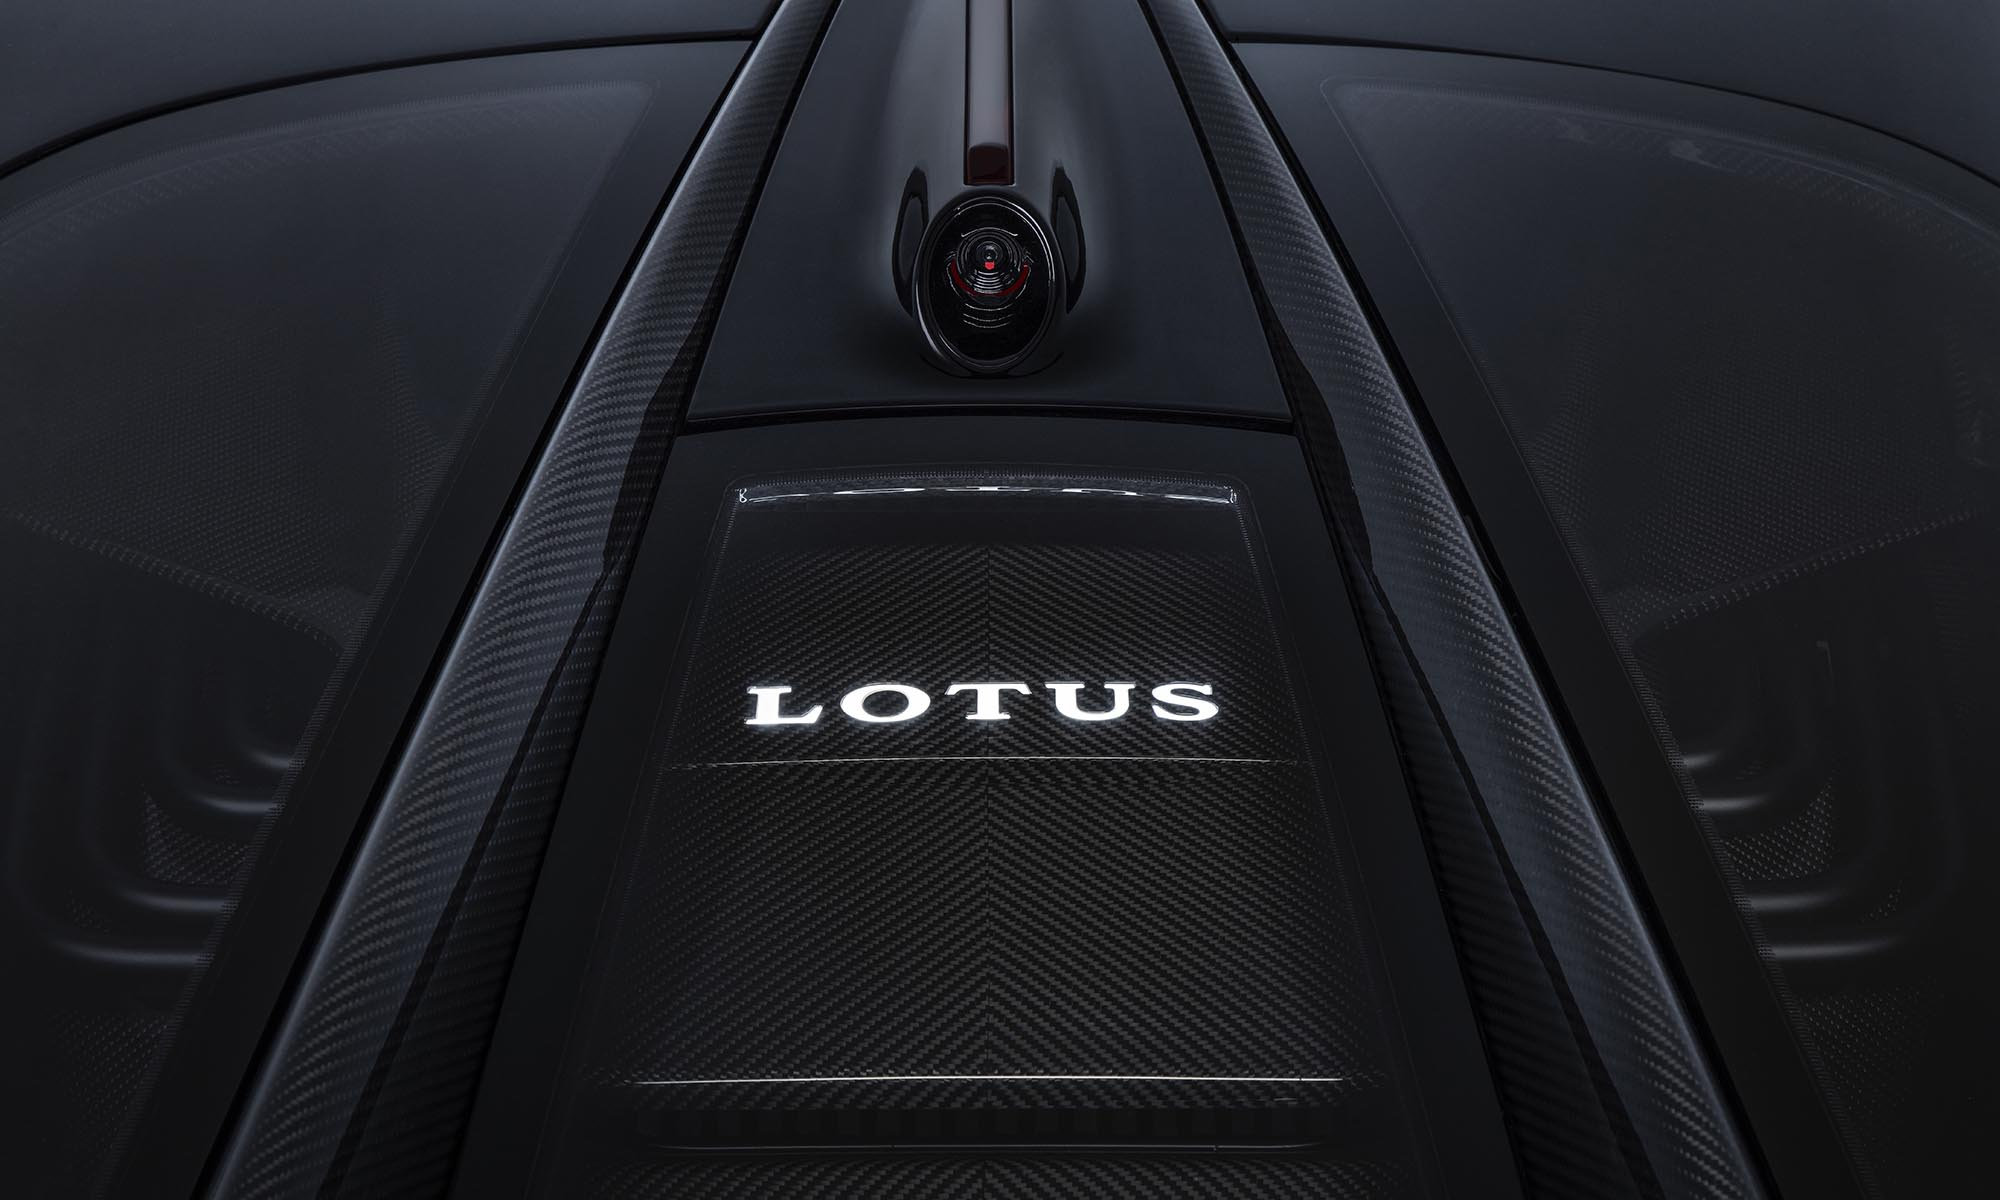 Electric British hypercar, Lotus, Evija, fastest cars, top car, electric car, lightweight luxury, luxury car, masterpiece, Forged by British engineering, created for the drivers, Pure beauty, Elegant simplicity, carmaker, Chinese automotive group Geely, electric hypercar, hypercar, four electric motors, 1972-horsepower,